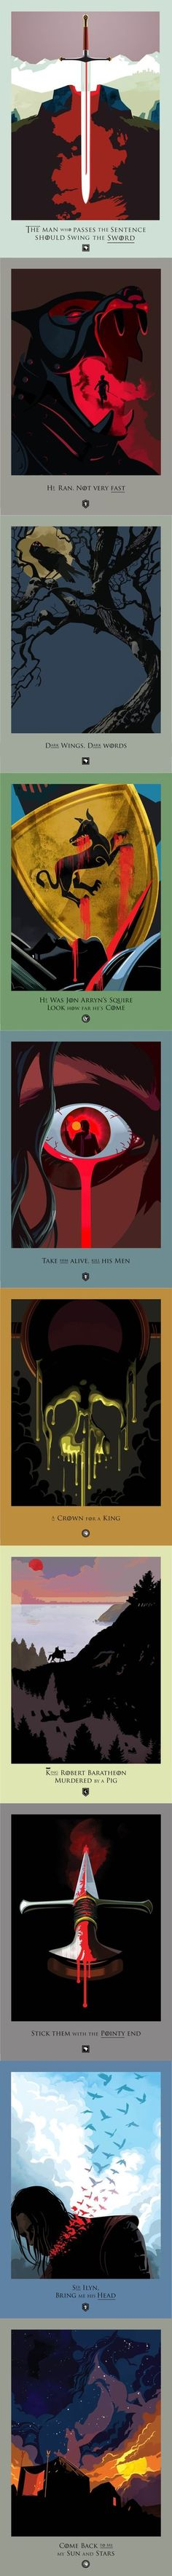 Beautiful deaths: Game of Thrones: Season 1 Chapters: 1-10 by Robert M. Ball.